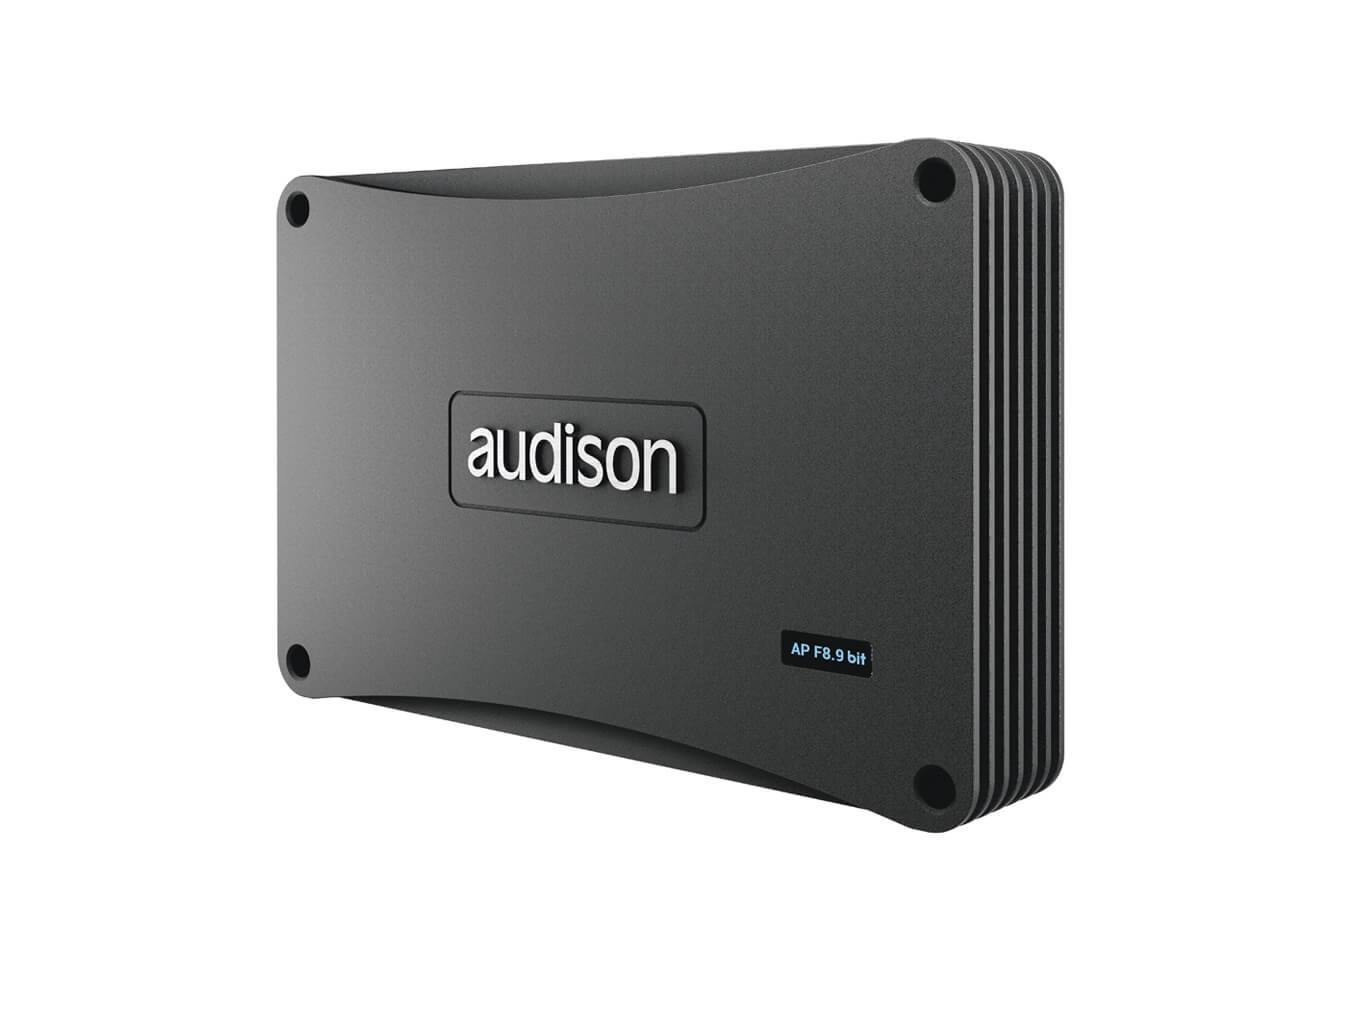 Audison Prima Forza AP F8.9 bit Amplifier with DSP - Side